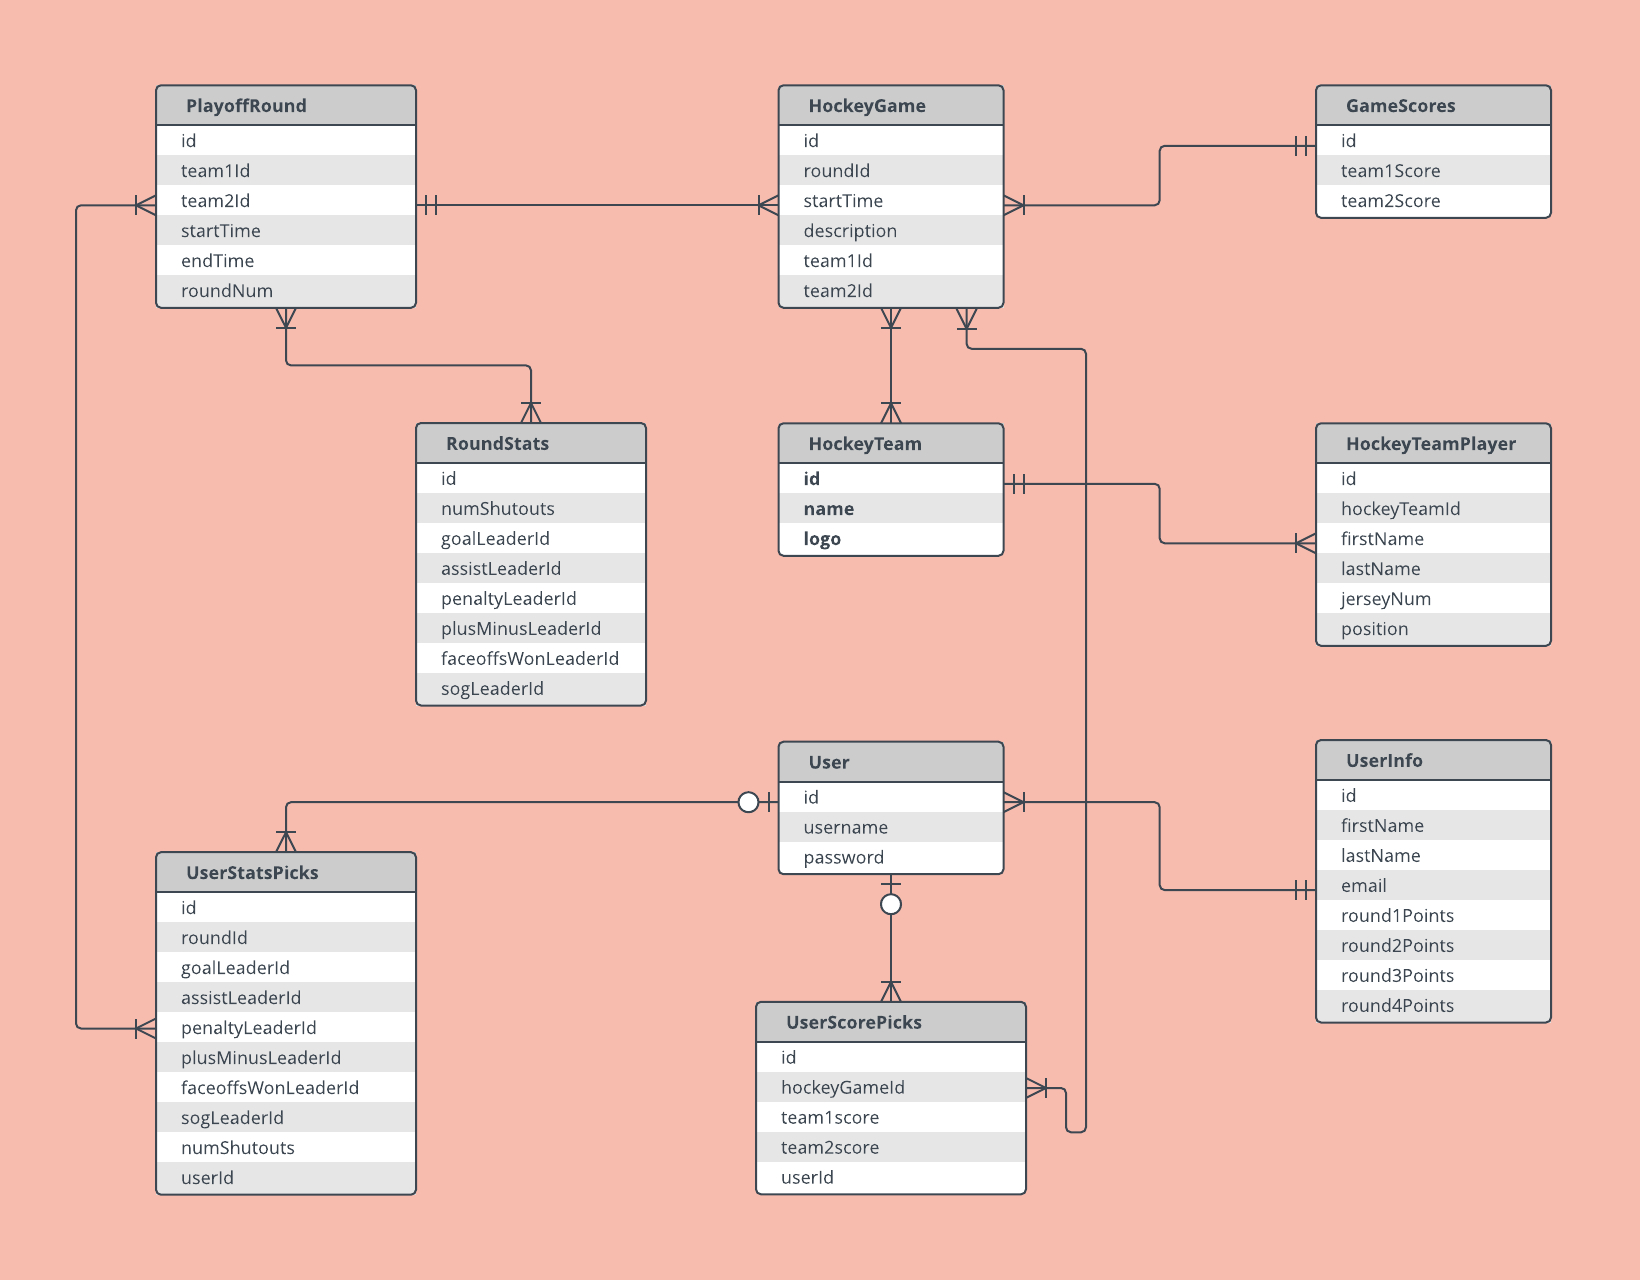 Er Diagram Examples And Templates | Lucidchart regarding Erd Entity Relationship Diagram Examples